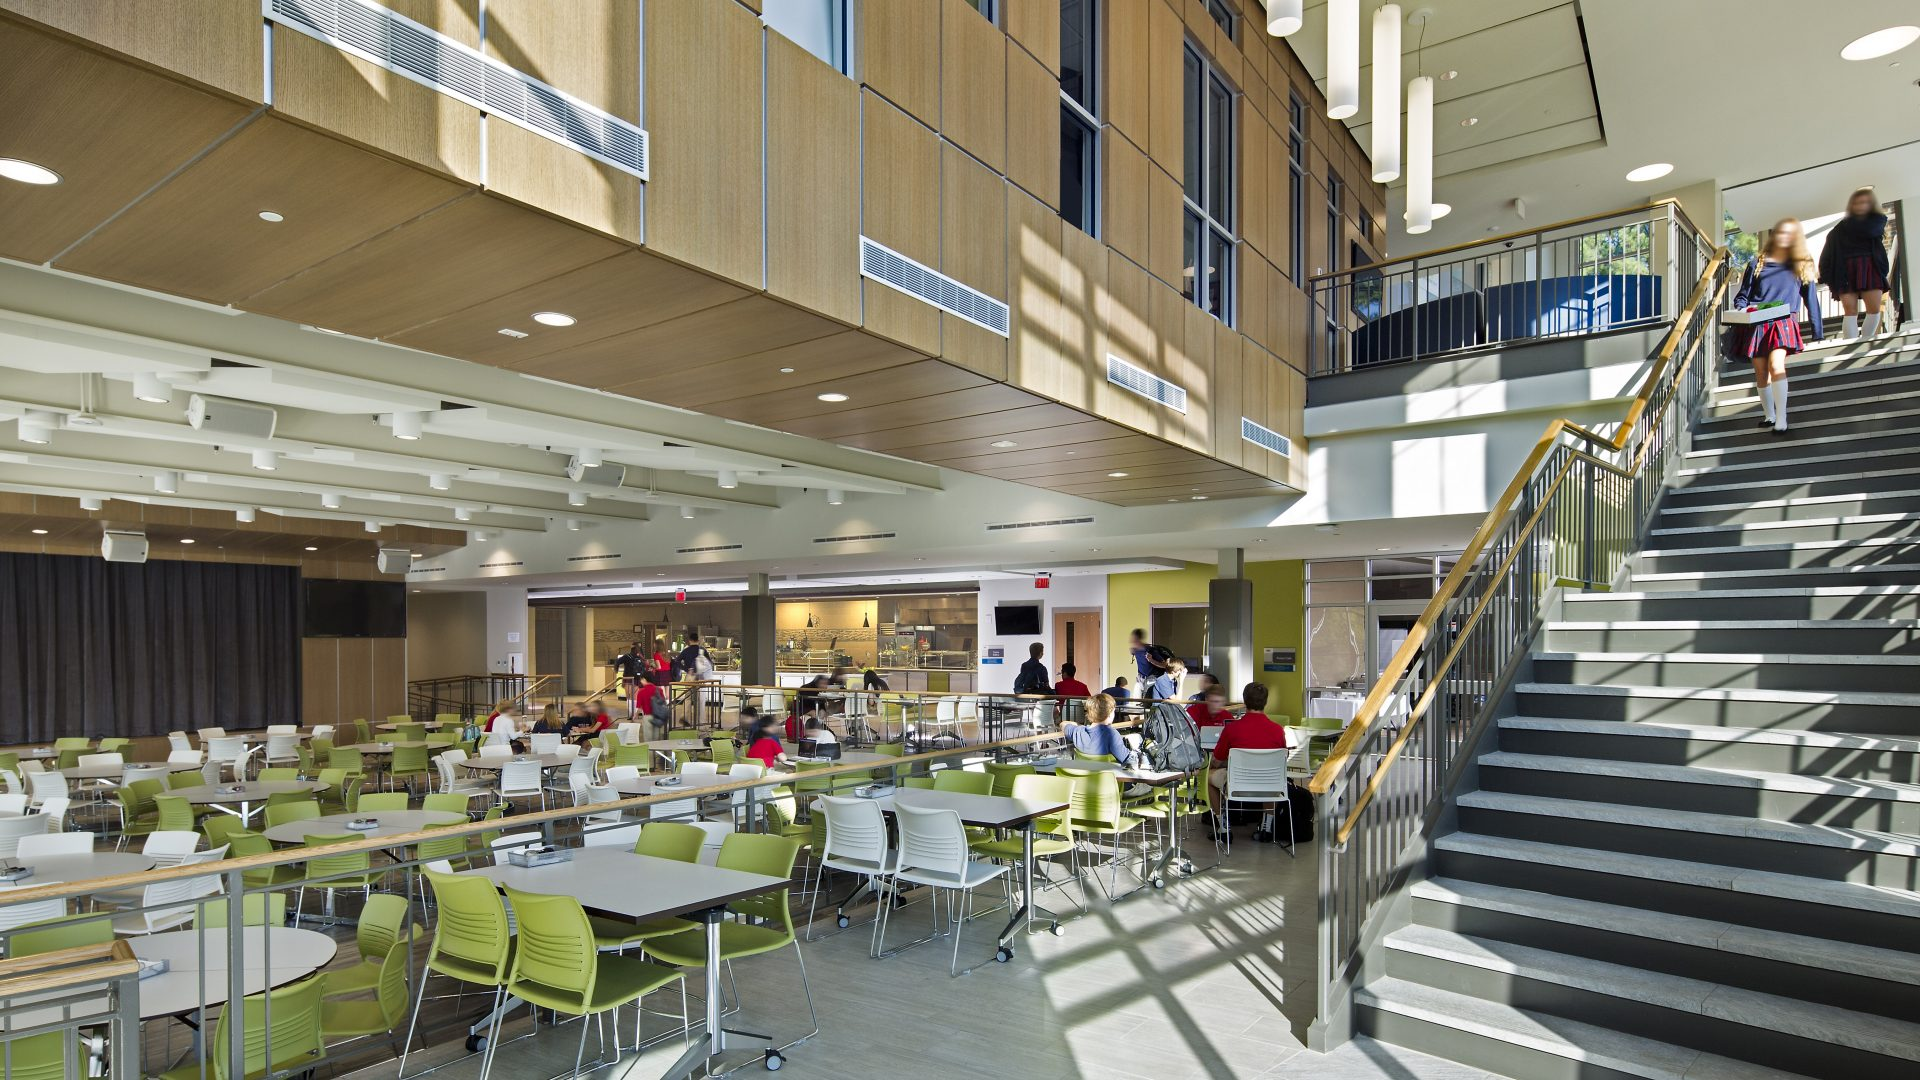 Mpcs Geier Hall Upper School And Dining Commons Collins Cooper Carusi Architects